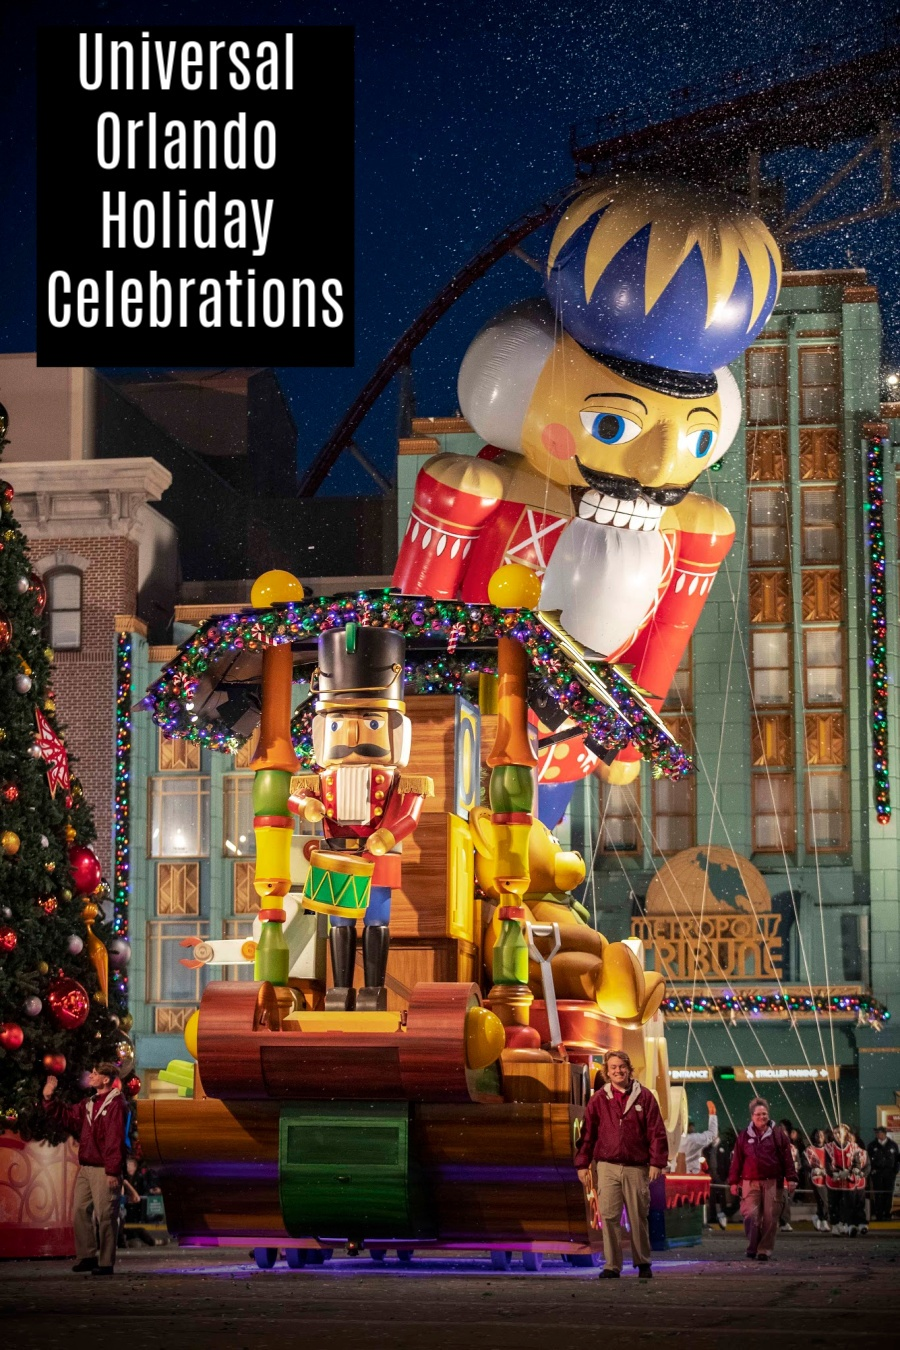 Things To Do at Universal Orlando Holiday Celebrations